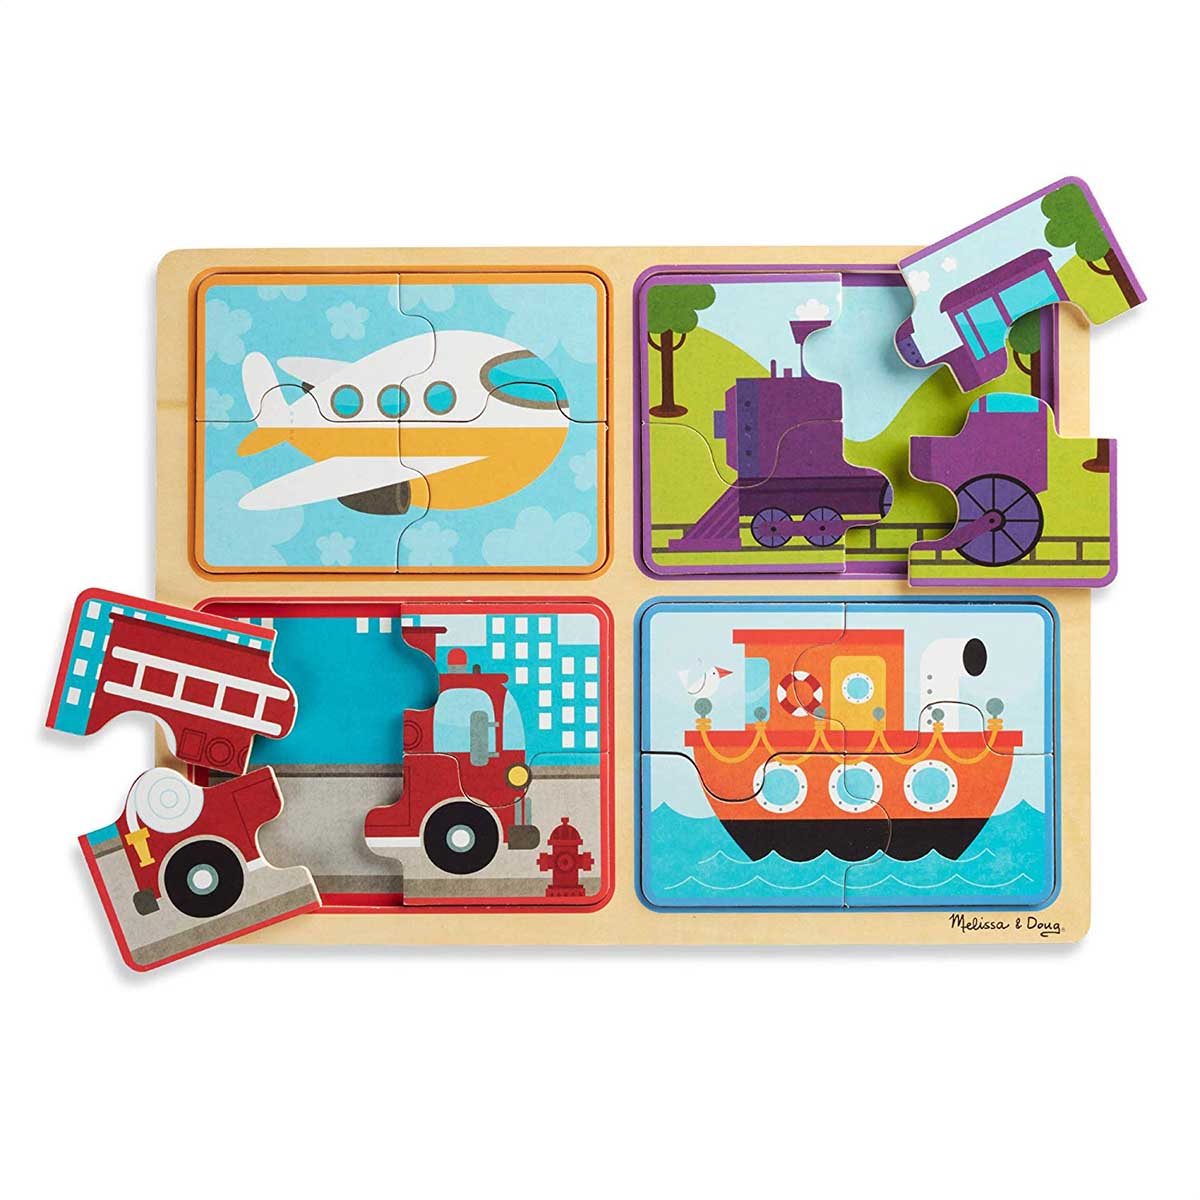 Green Start Wooden Puzzle - Ready, Set, Go Planes Jigsaw Puzzle